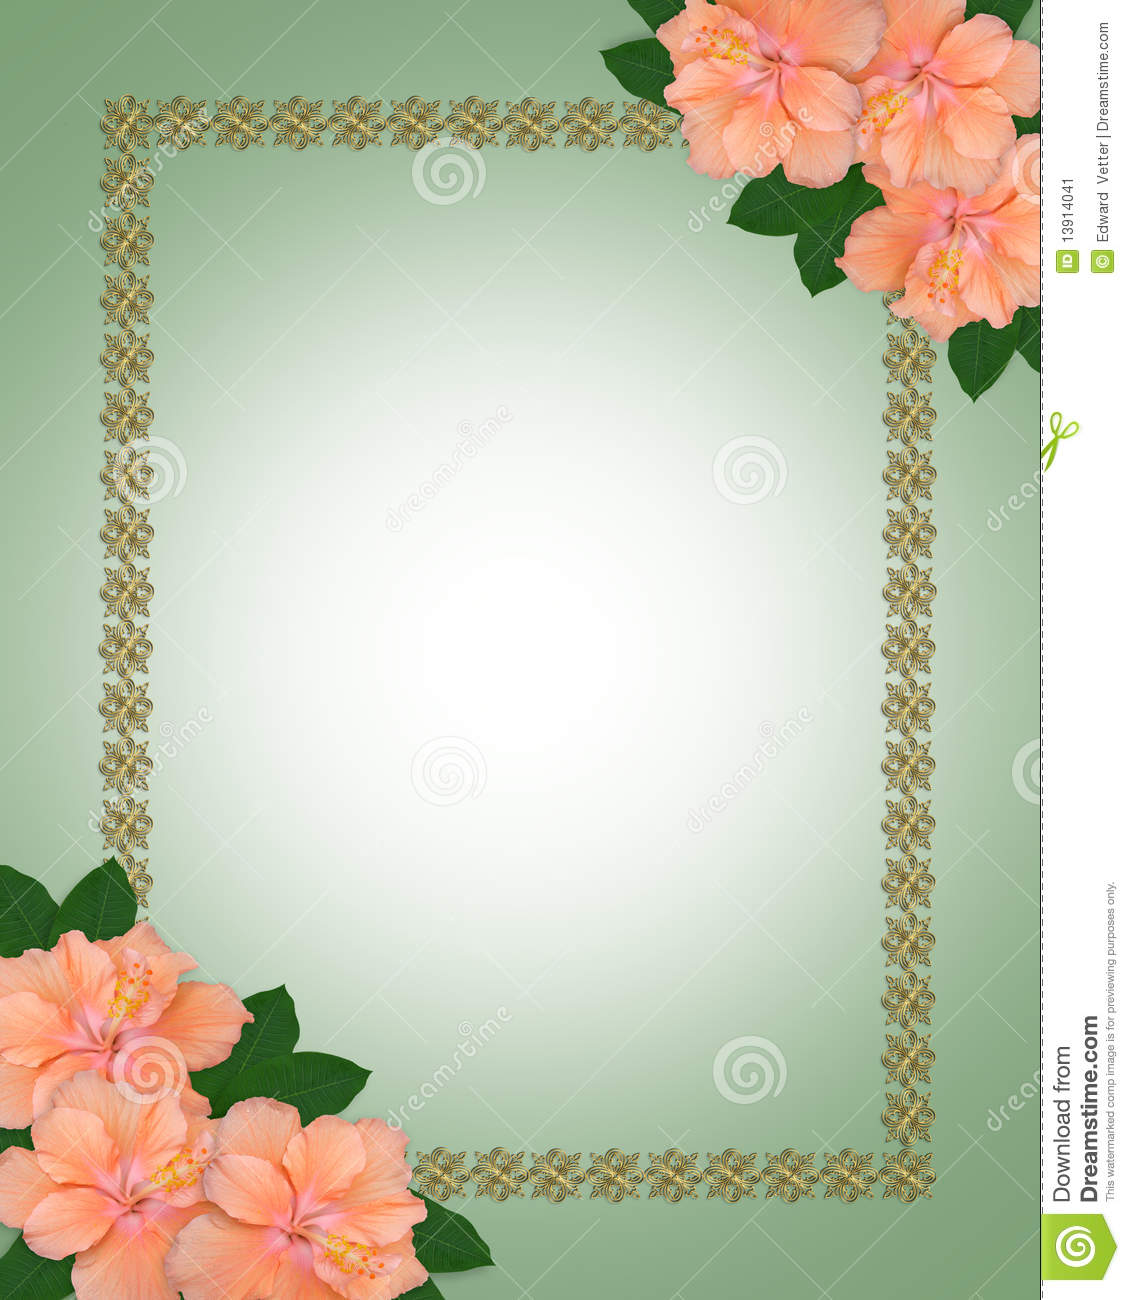 Wedding Invitation Border Hibiscus Stock Illustration ...